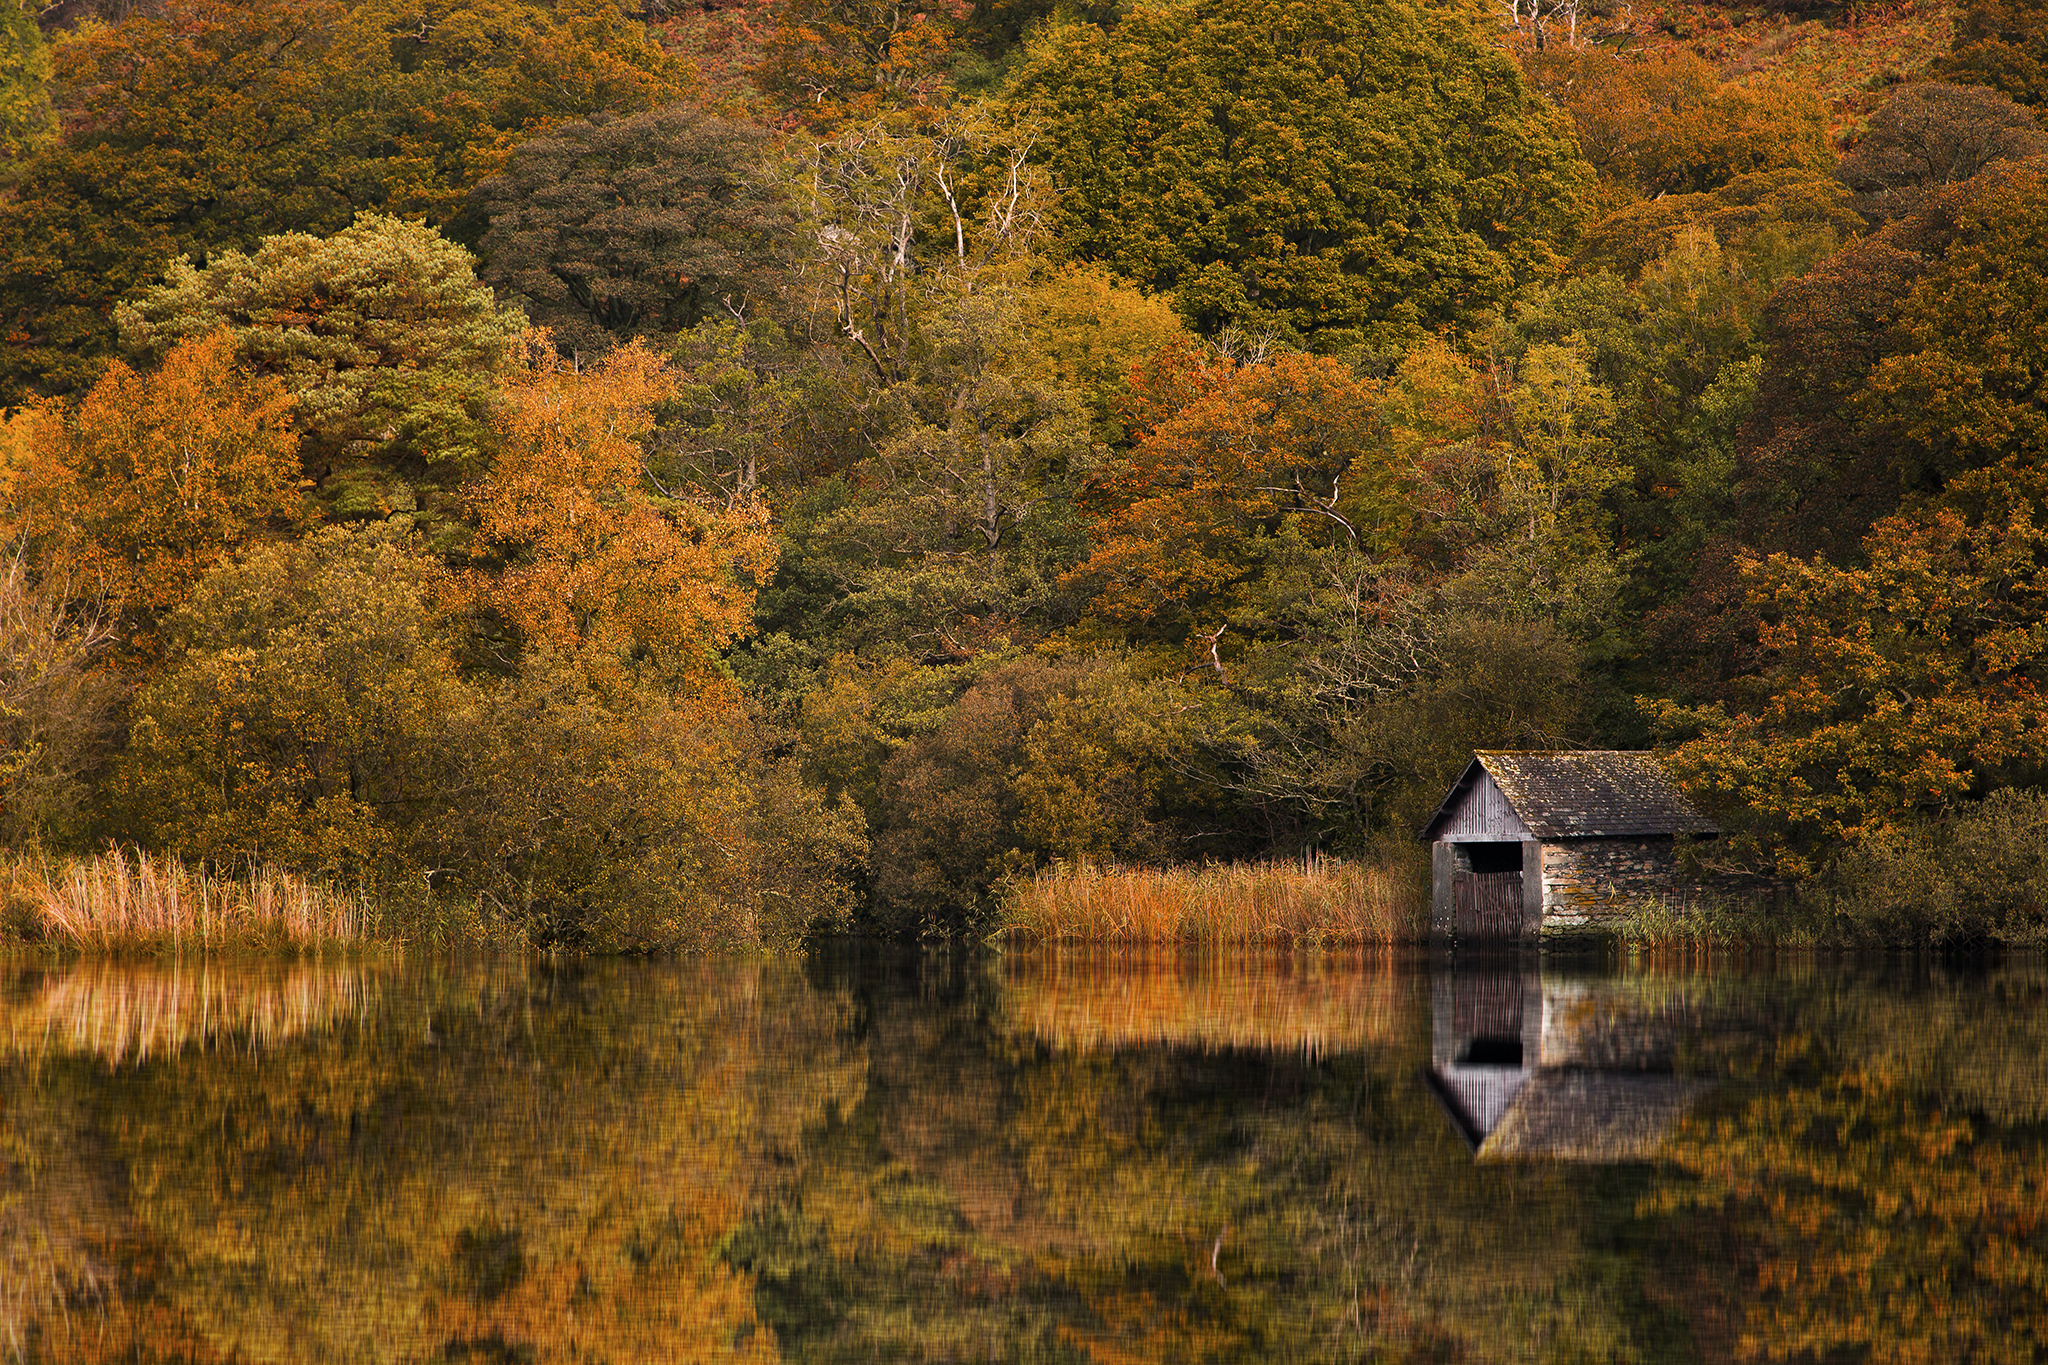 Boathouse on Rydal Water in the English Lake District, United Kingdom